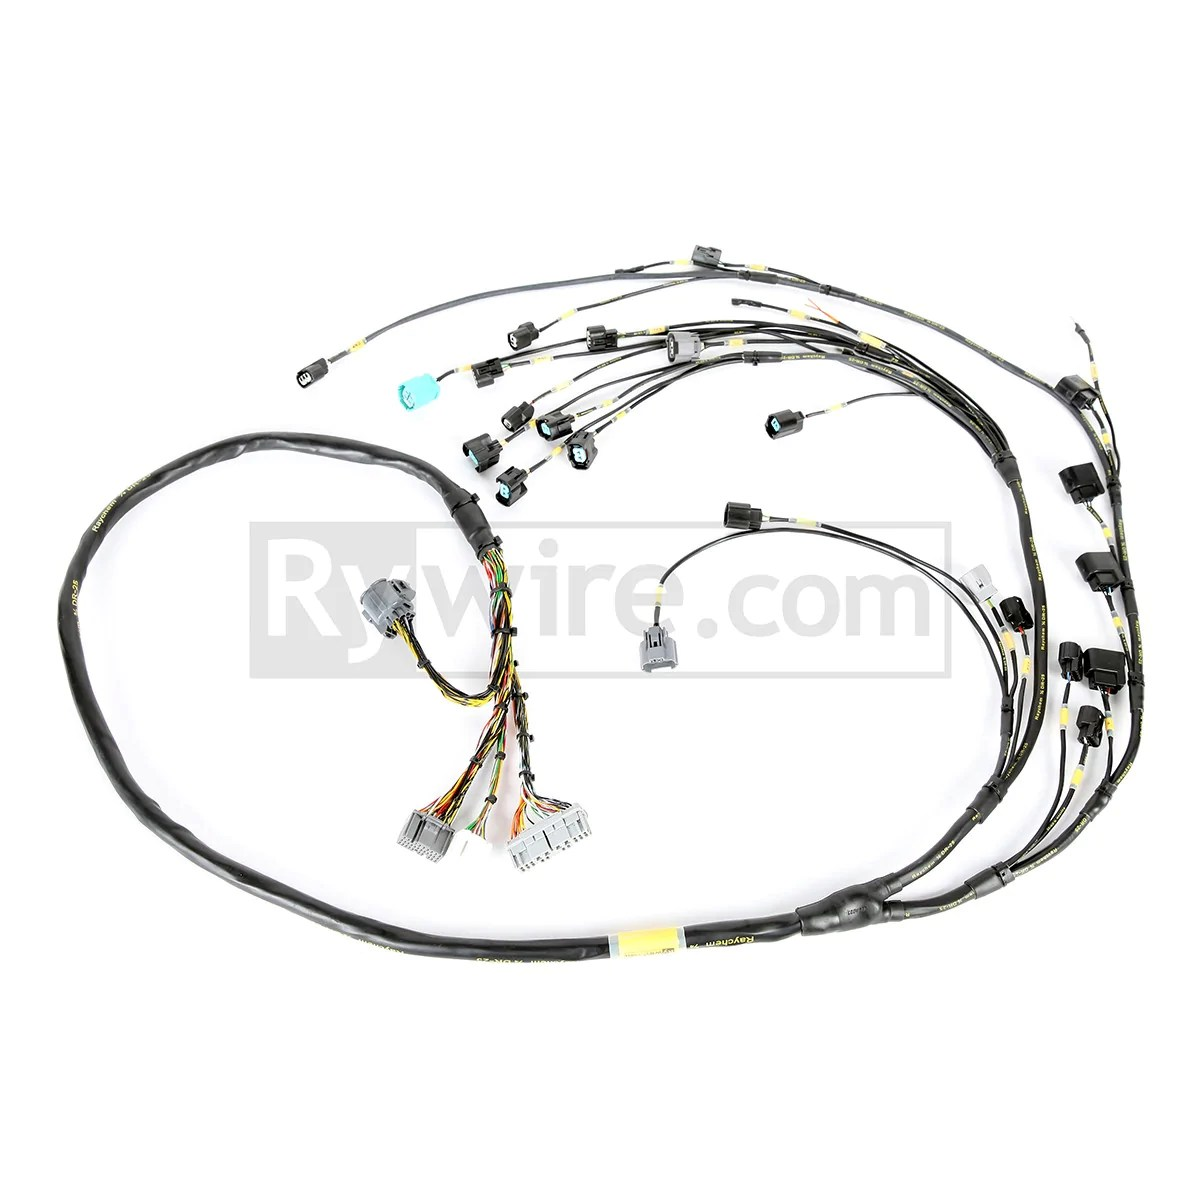 small resolution of rywire mil spec tucked k series harness ver 2 with quick disconnect